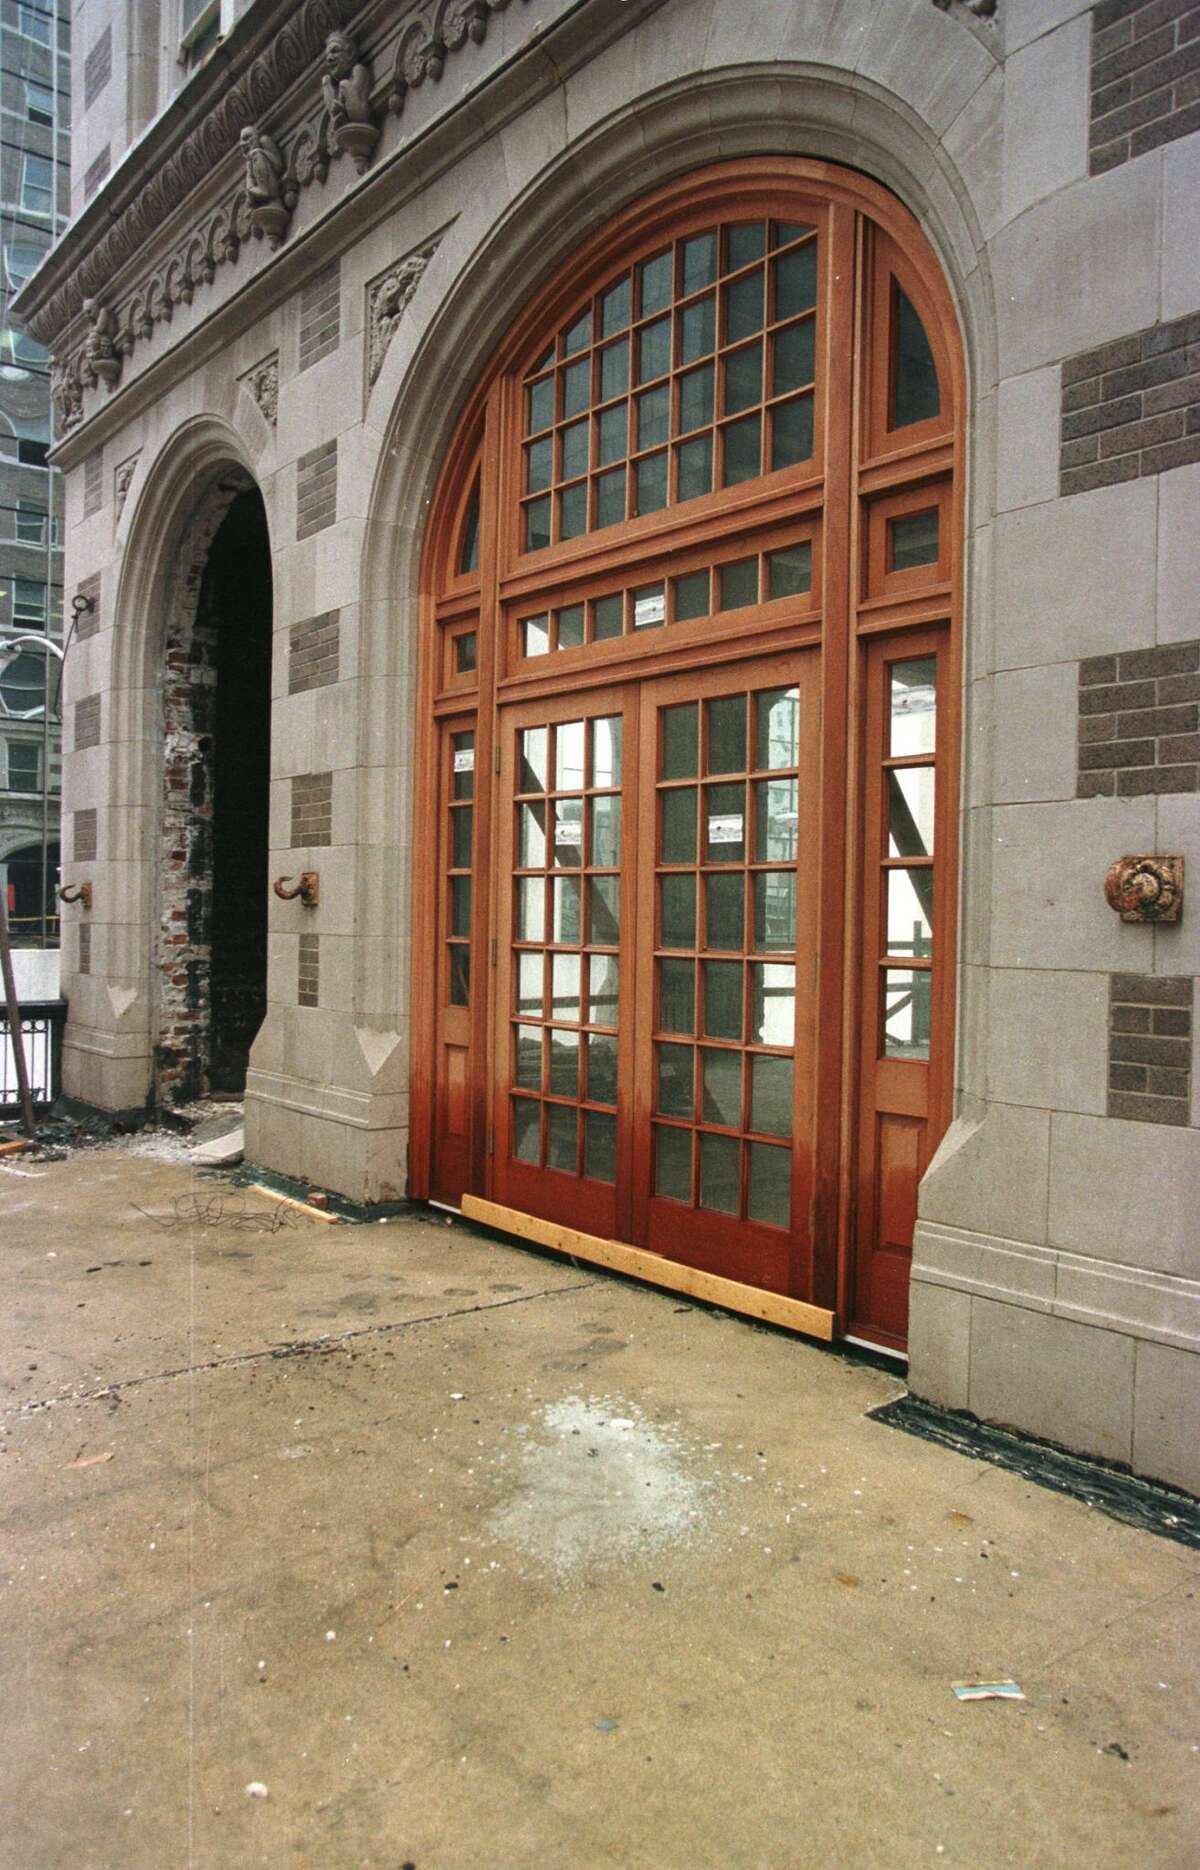 With its graceful french doors now replaced, this archway leads from a second-floor bar to a balcony at the Rice Hotel. At street level the balcony forms a promenade to shelter pedestrians from summer sun.